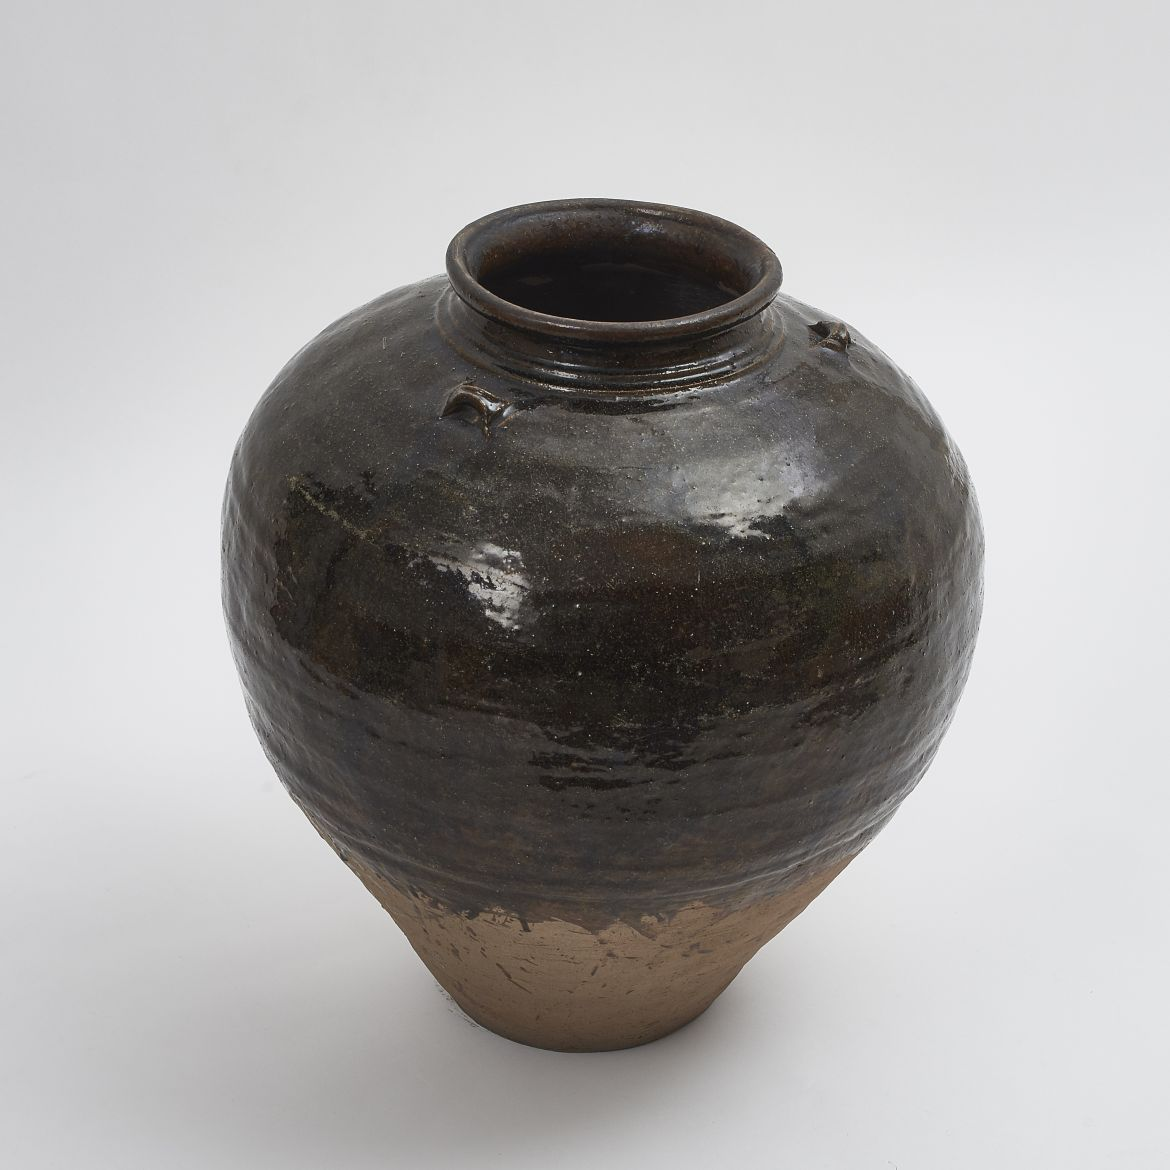 19thC Black Glaze Water Jar